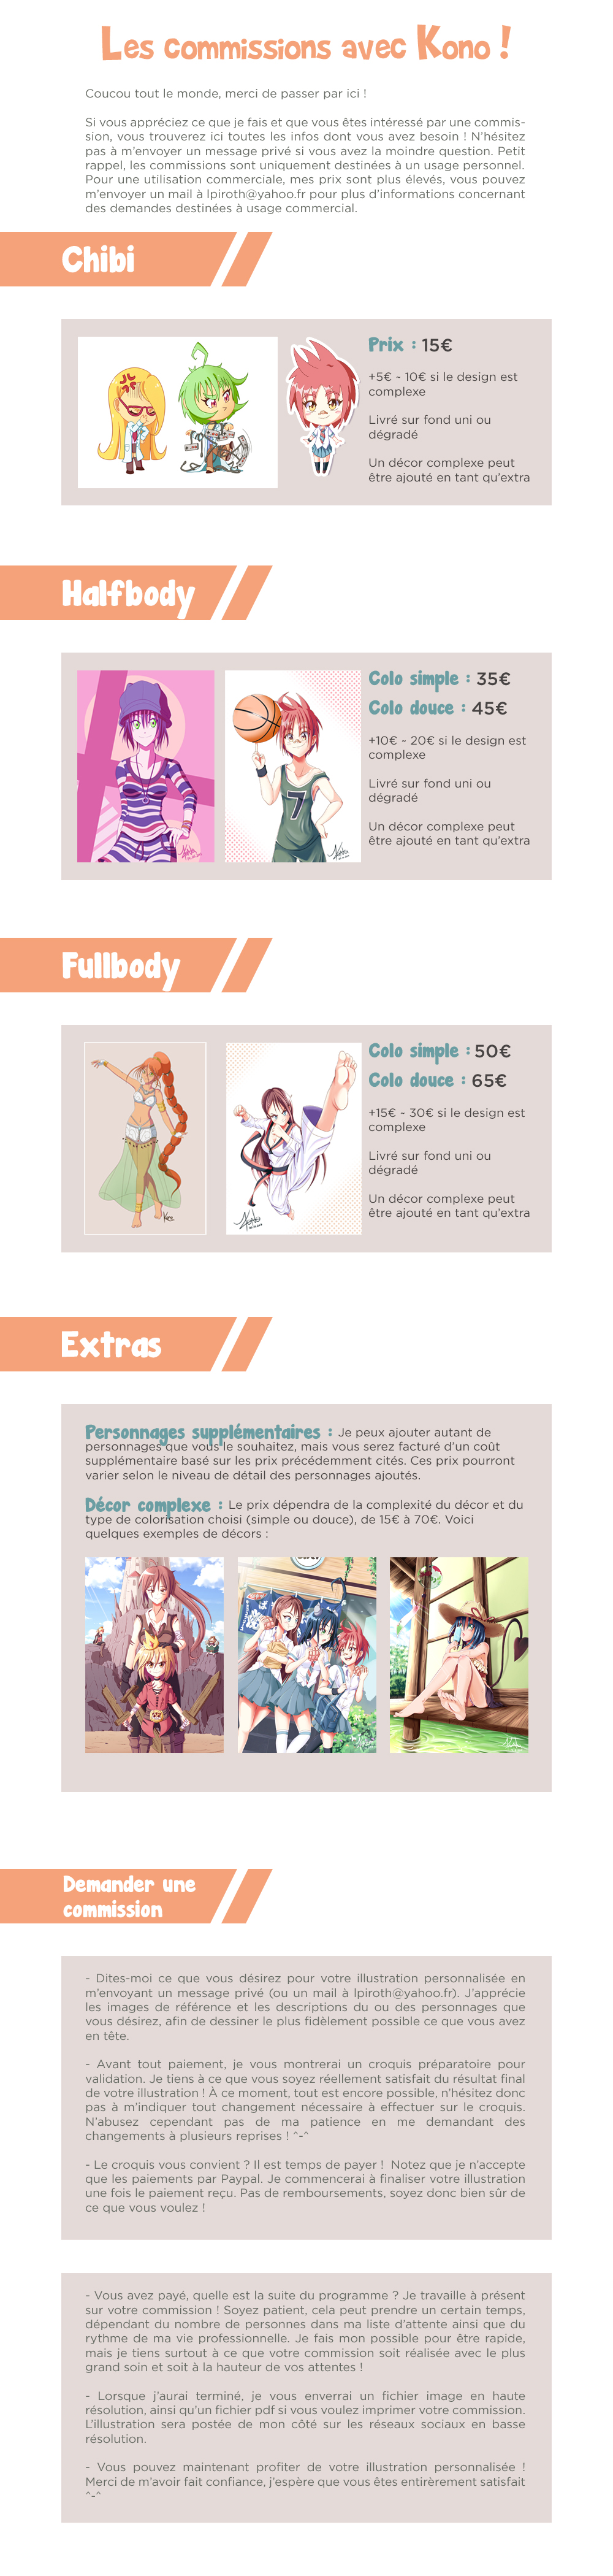 Infos commissions